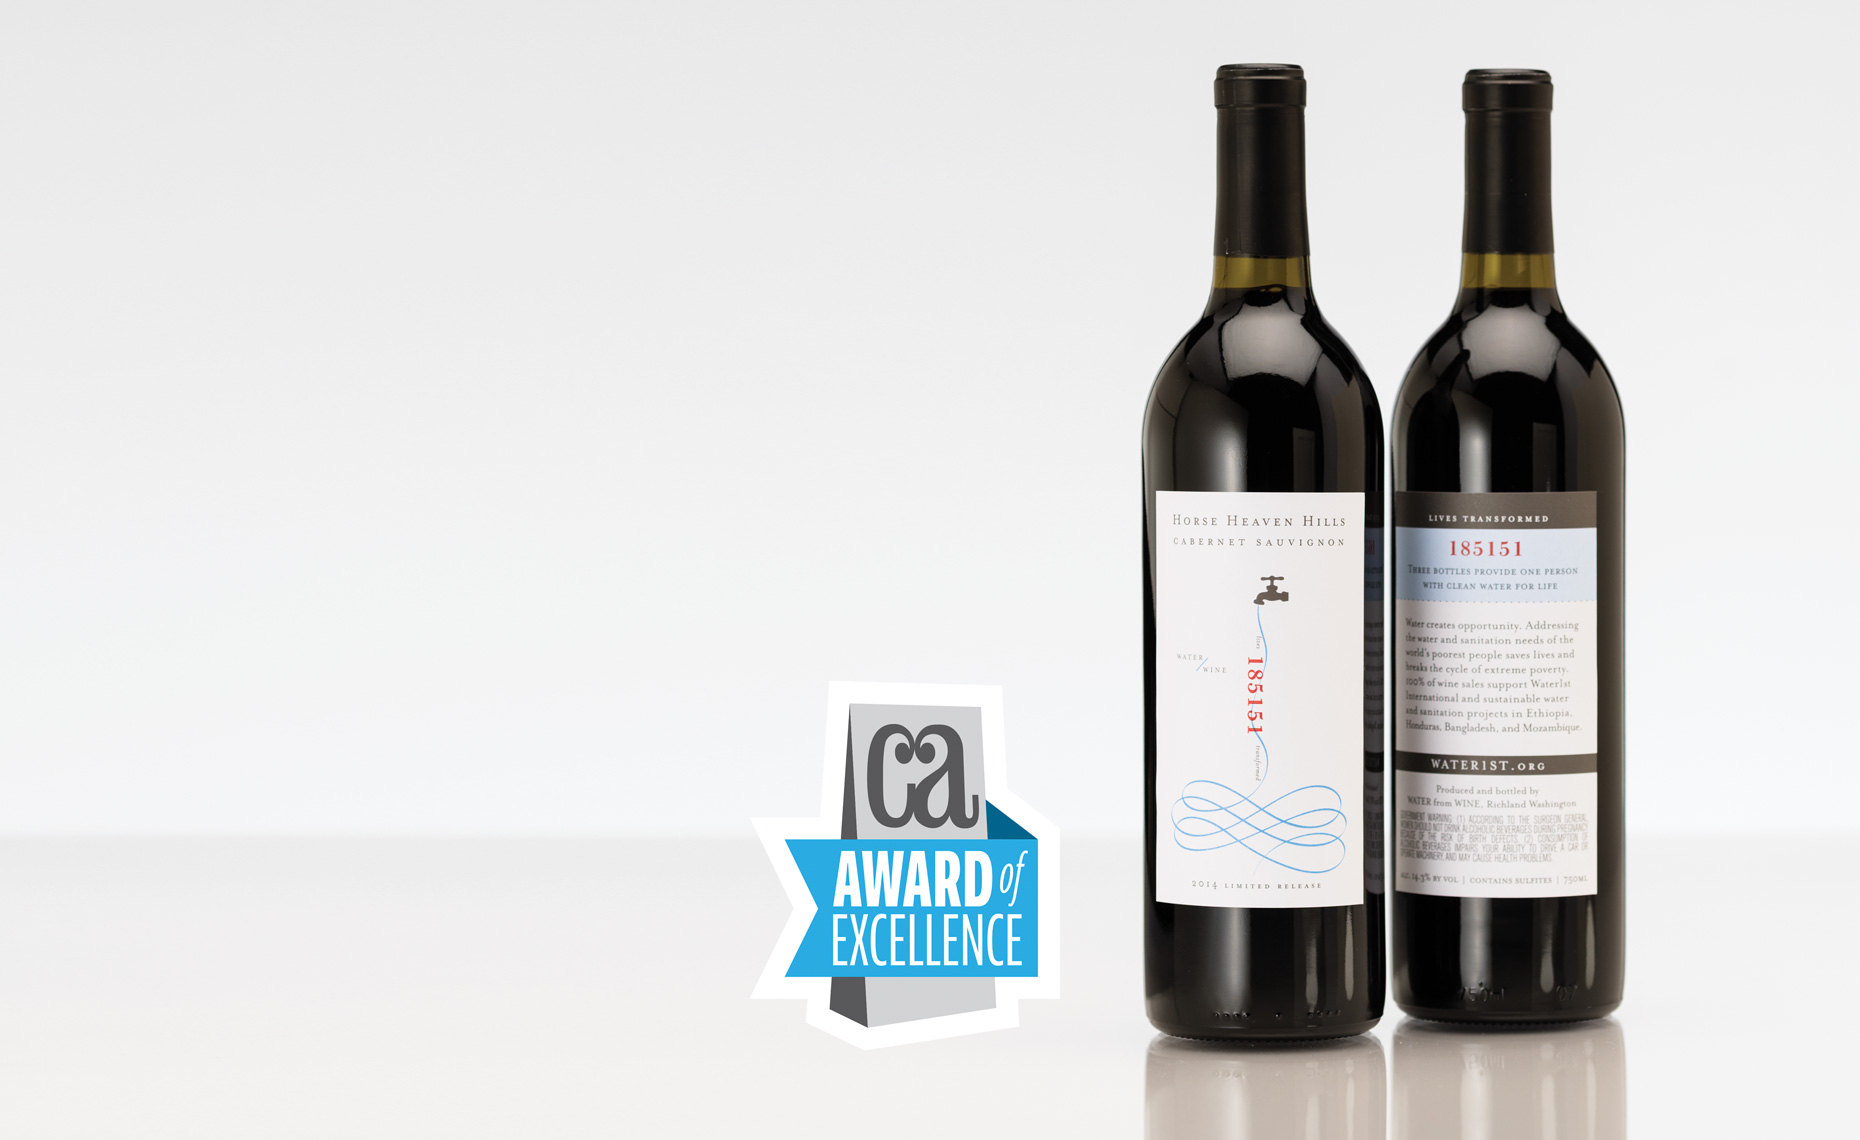 Hybrid3_WaterFirstWine_BOTTLE_CA_AWARD